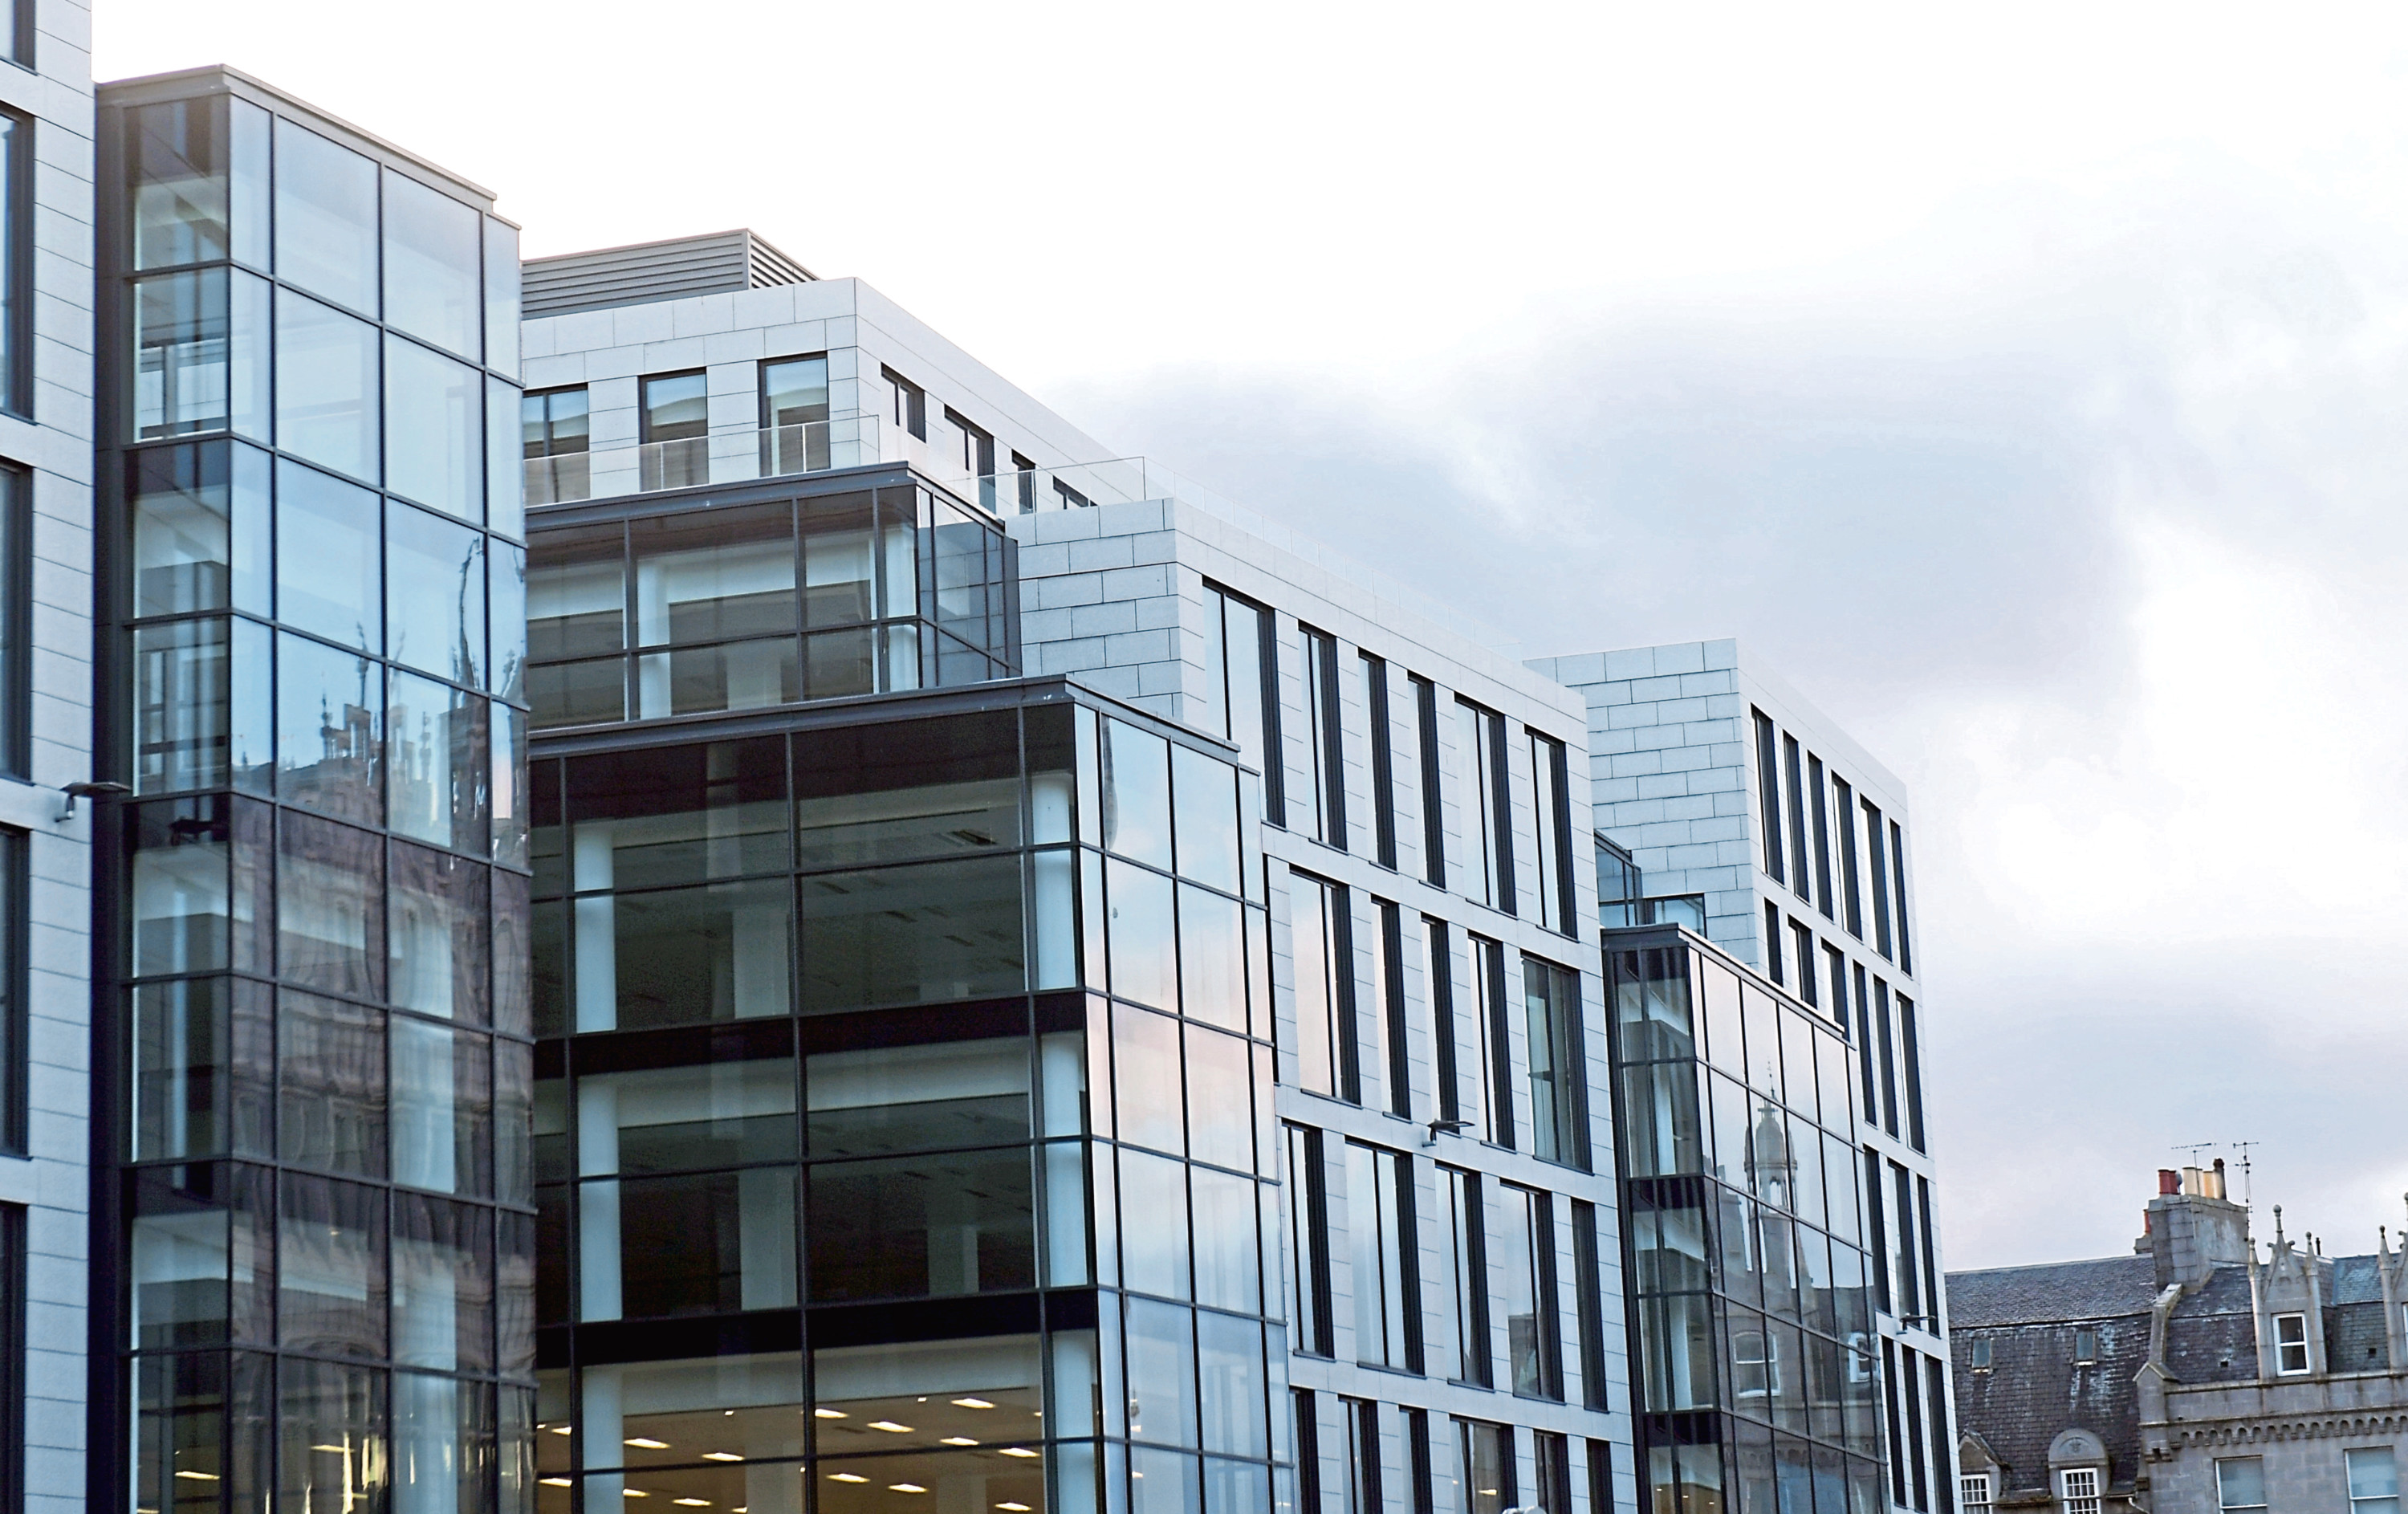 The firm will be moving into 2 Marischal Square